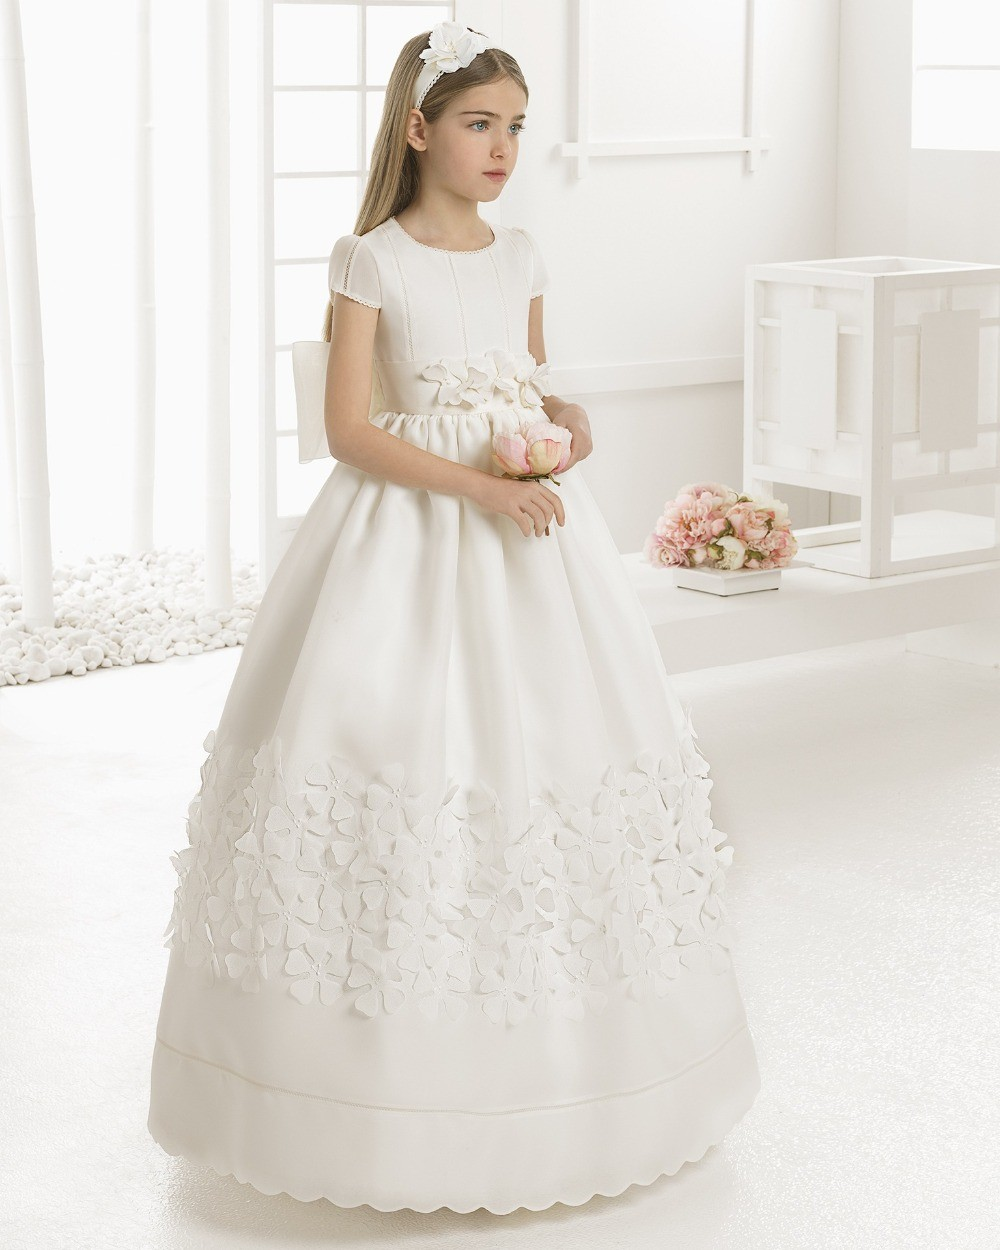 New   Girls   Party Gown White/Ivory First Communion   Dresses   Satin Short Sleeve   Flower     Girl     Dresses     Girls   Communion Gown Size2-14Y